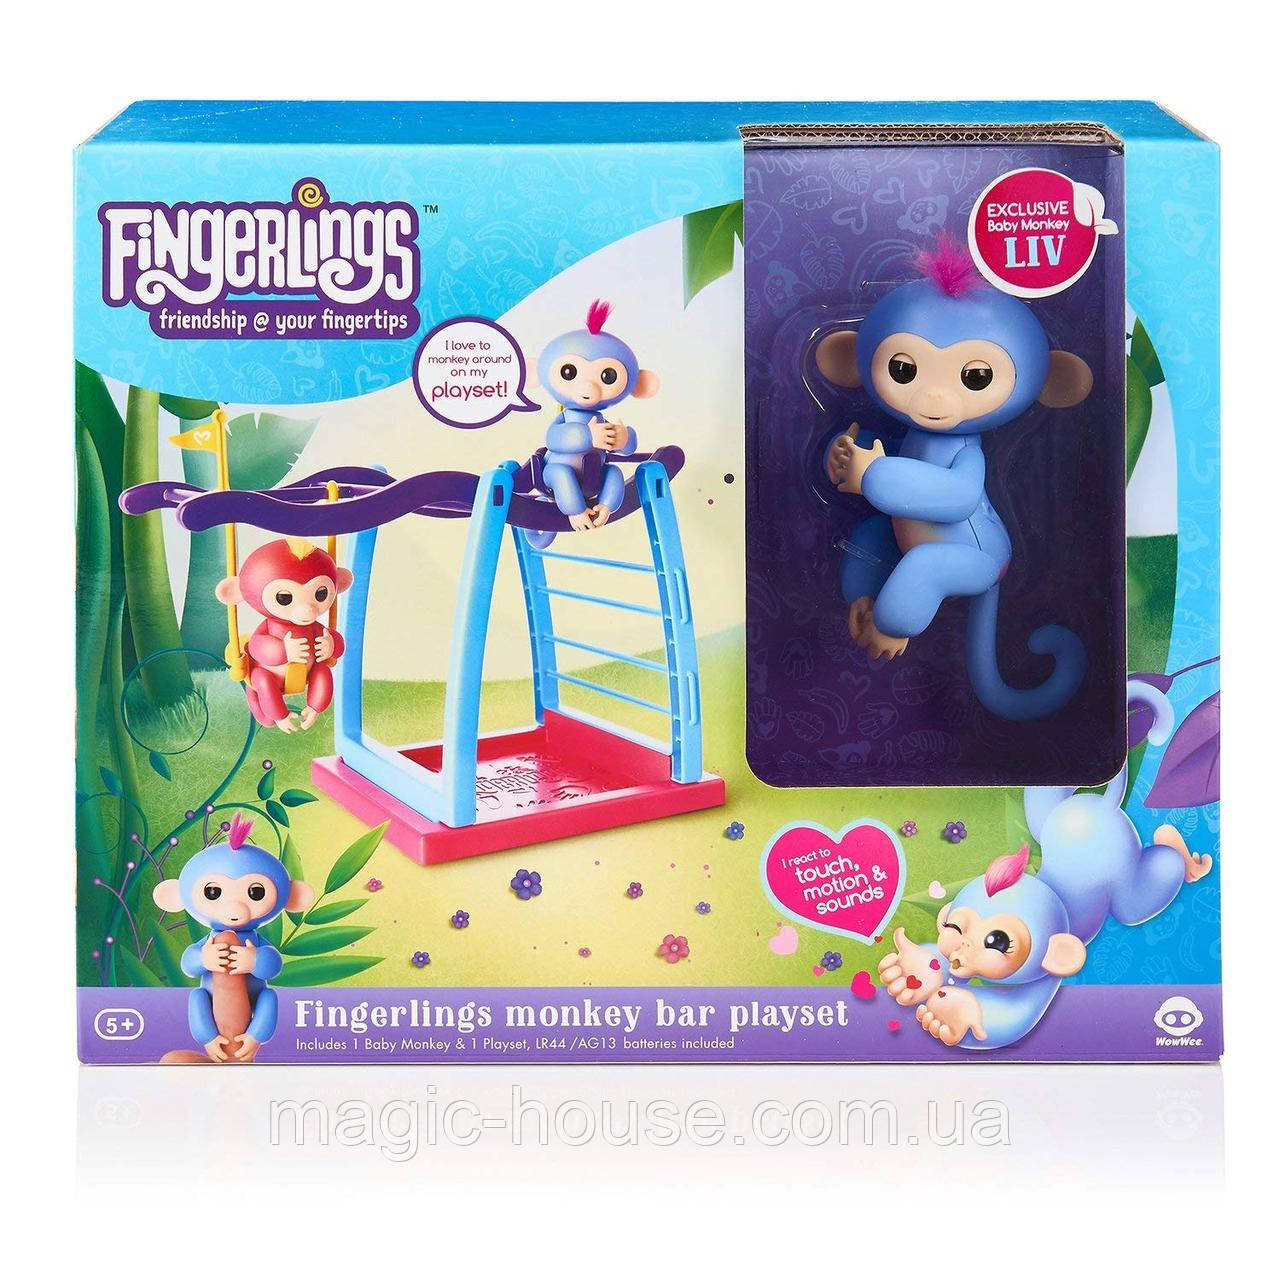 Интерактивная обезьянка Оригинал Фингерлинг  на детской площадке  WowWee Fingerlings Monkey Bar Playground